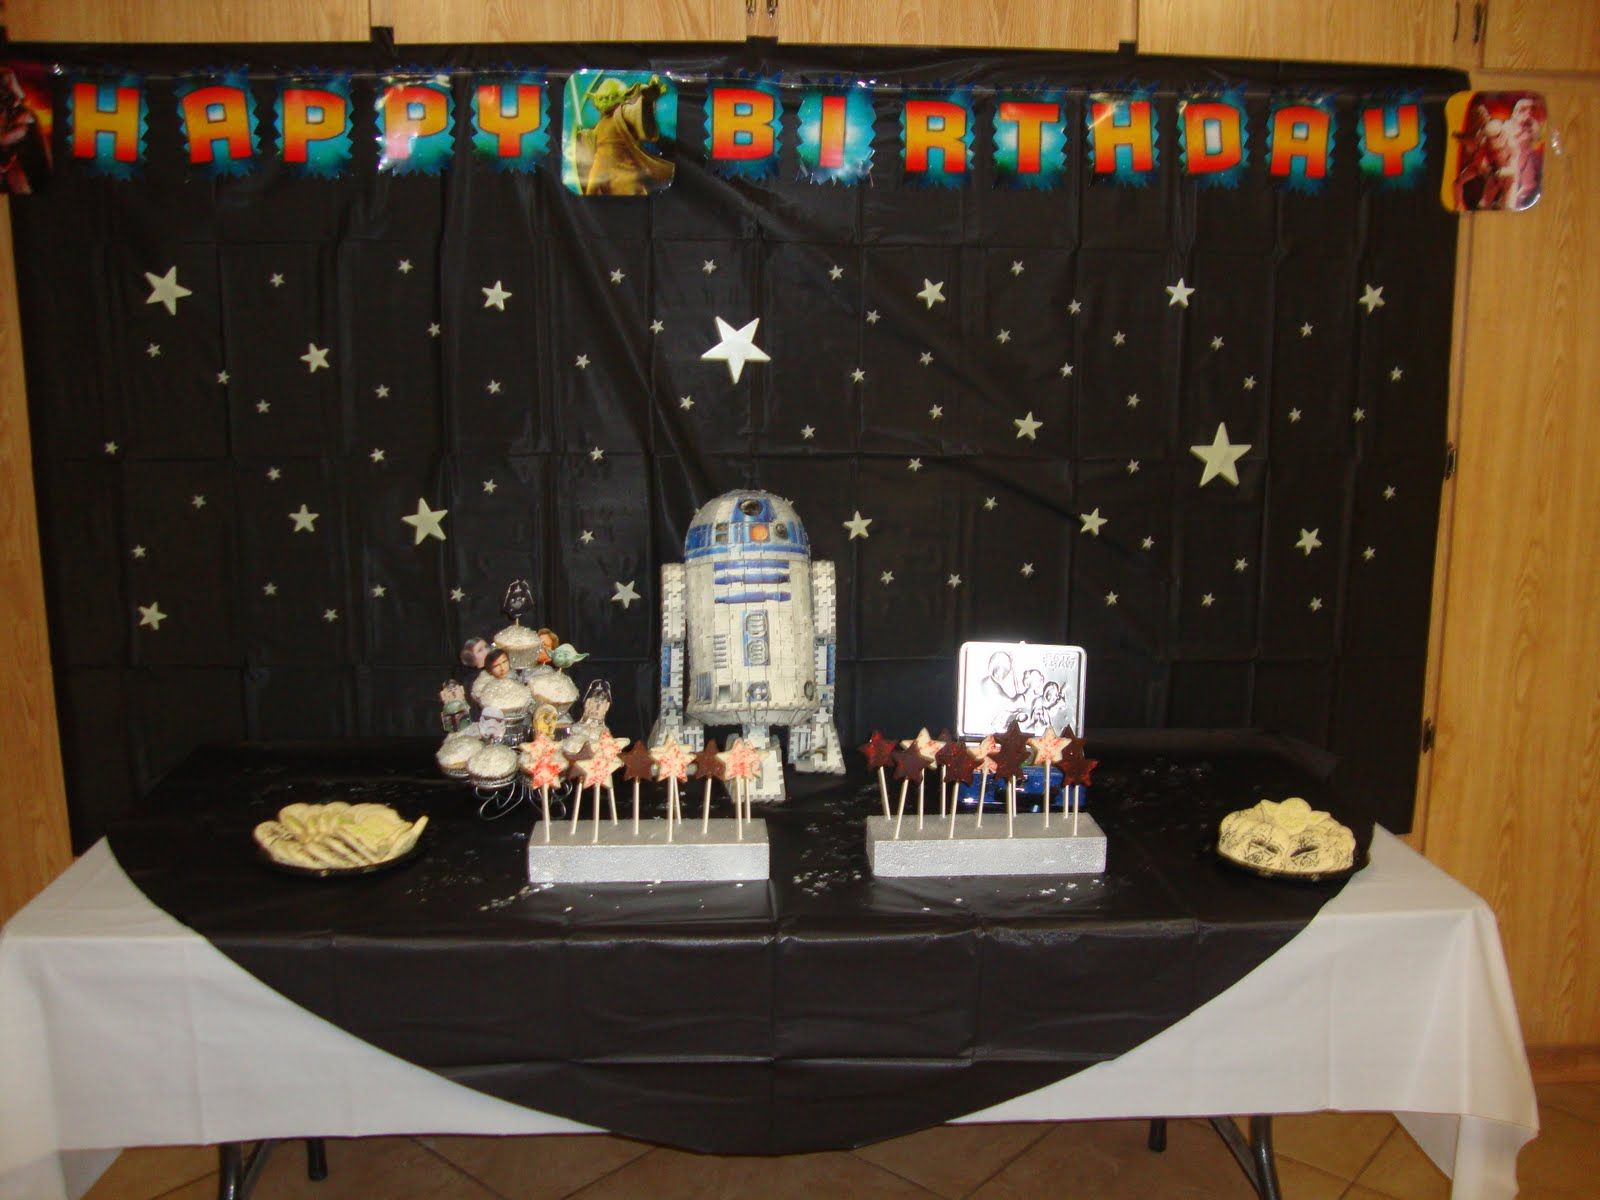 i like the black background with silver stars as a backdrop for pictures very cute - Star Wars Decorations